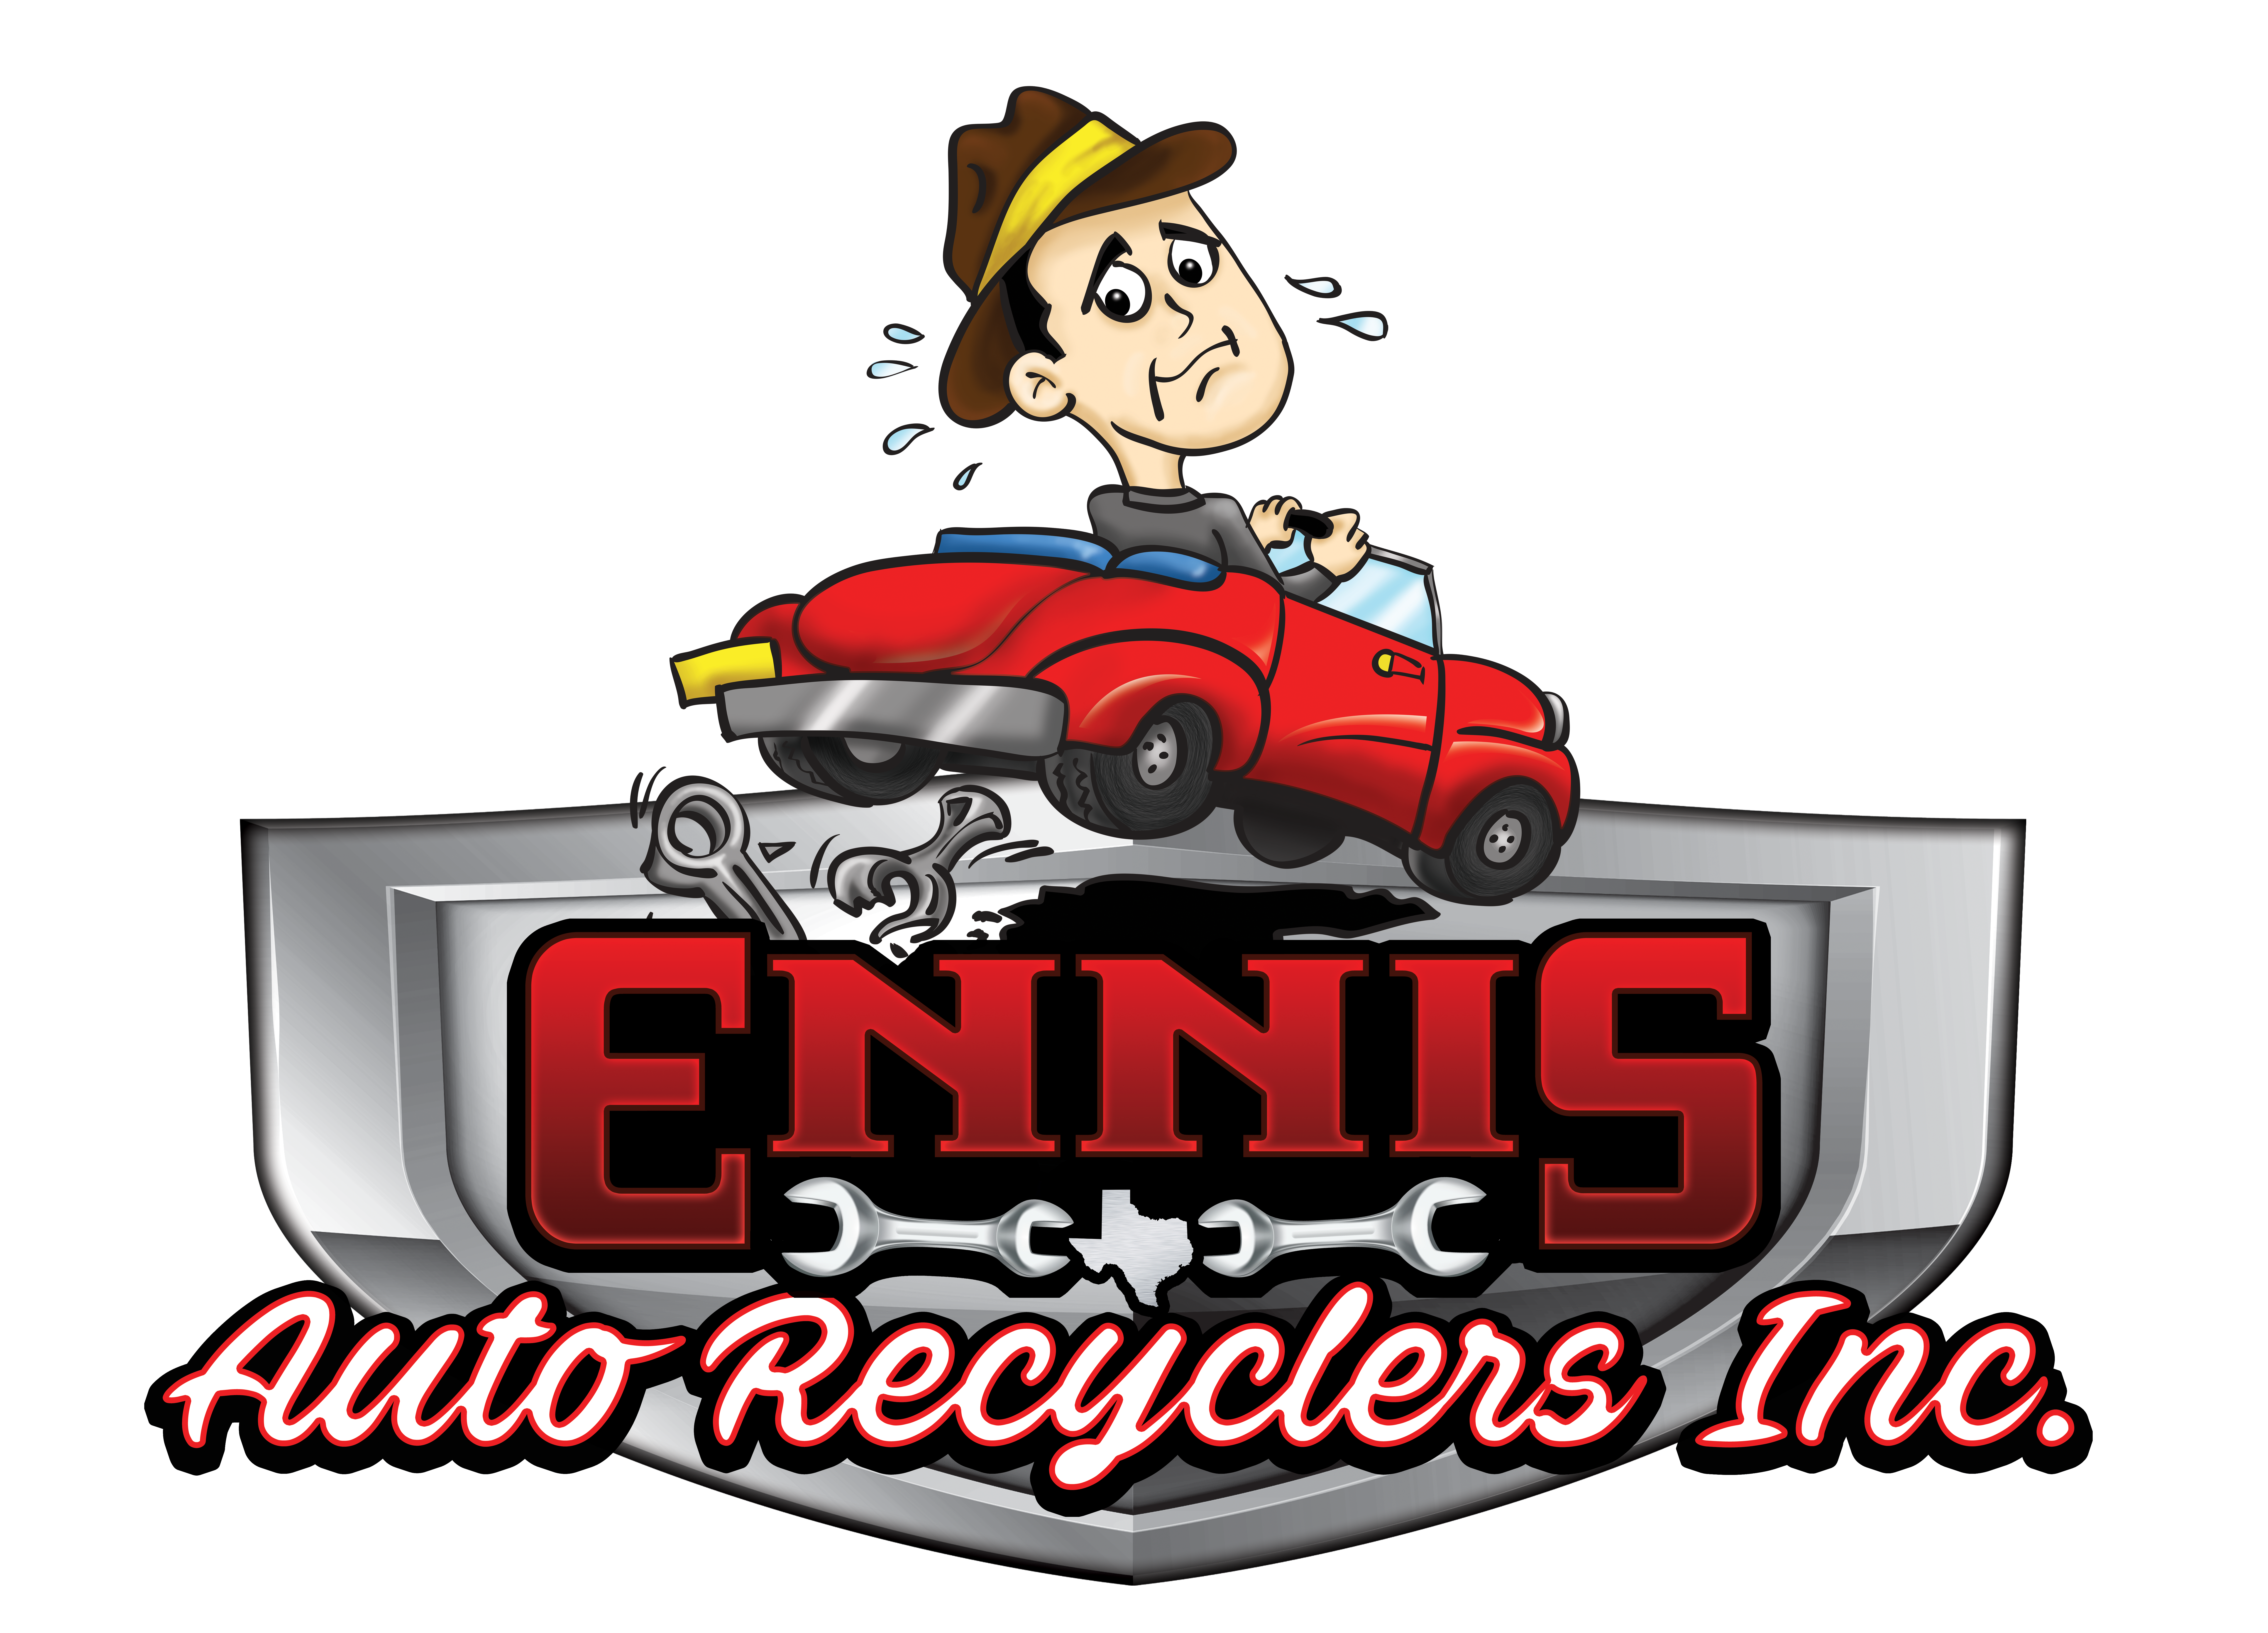 Ennis Auto Recyclers Inc Home Used Auto Parts